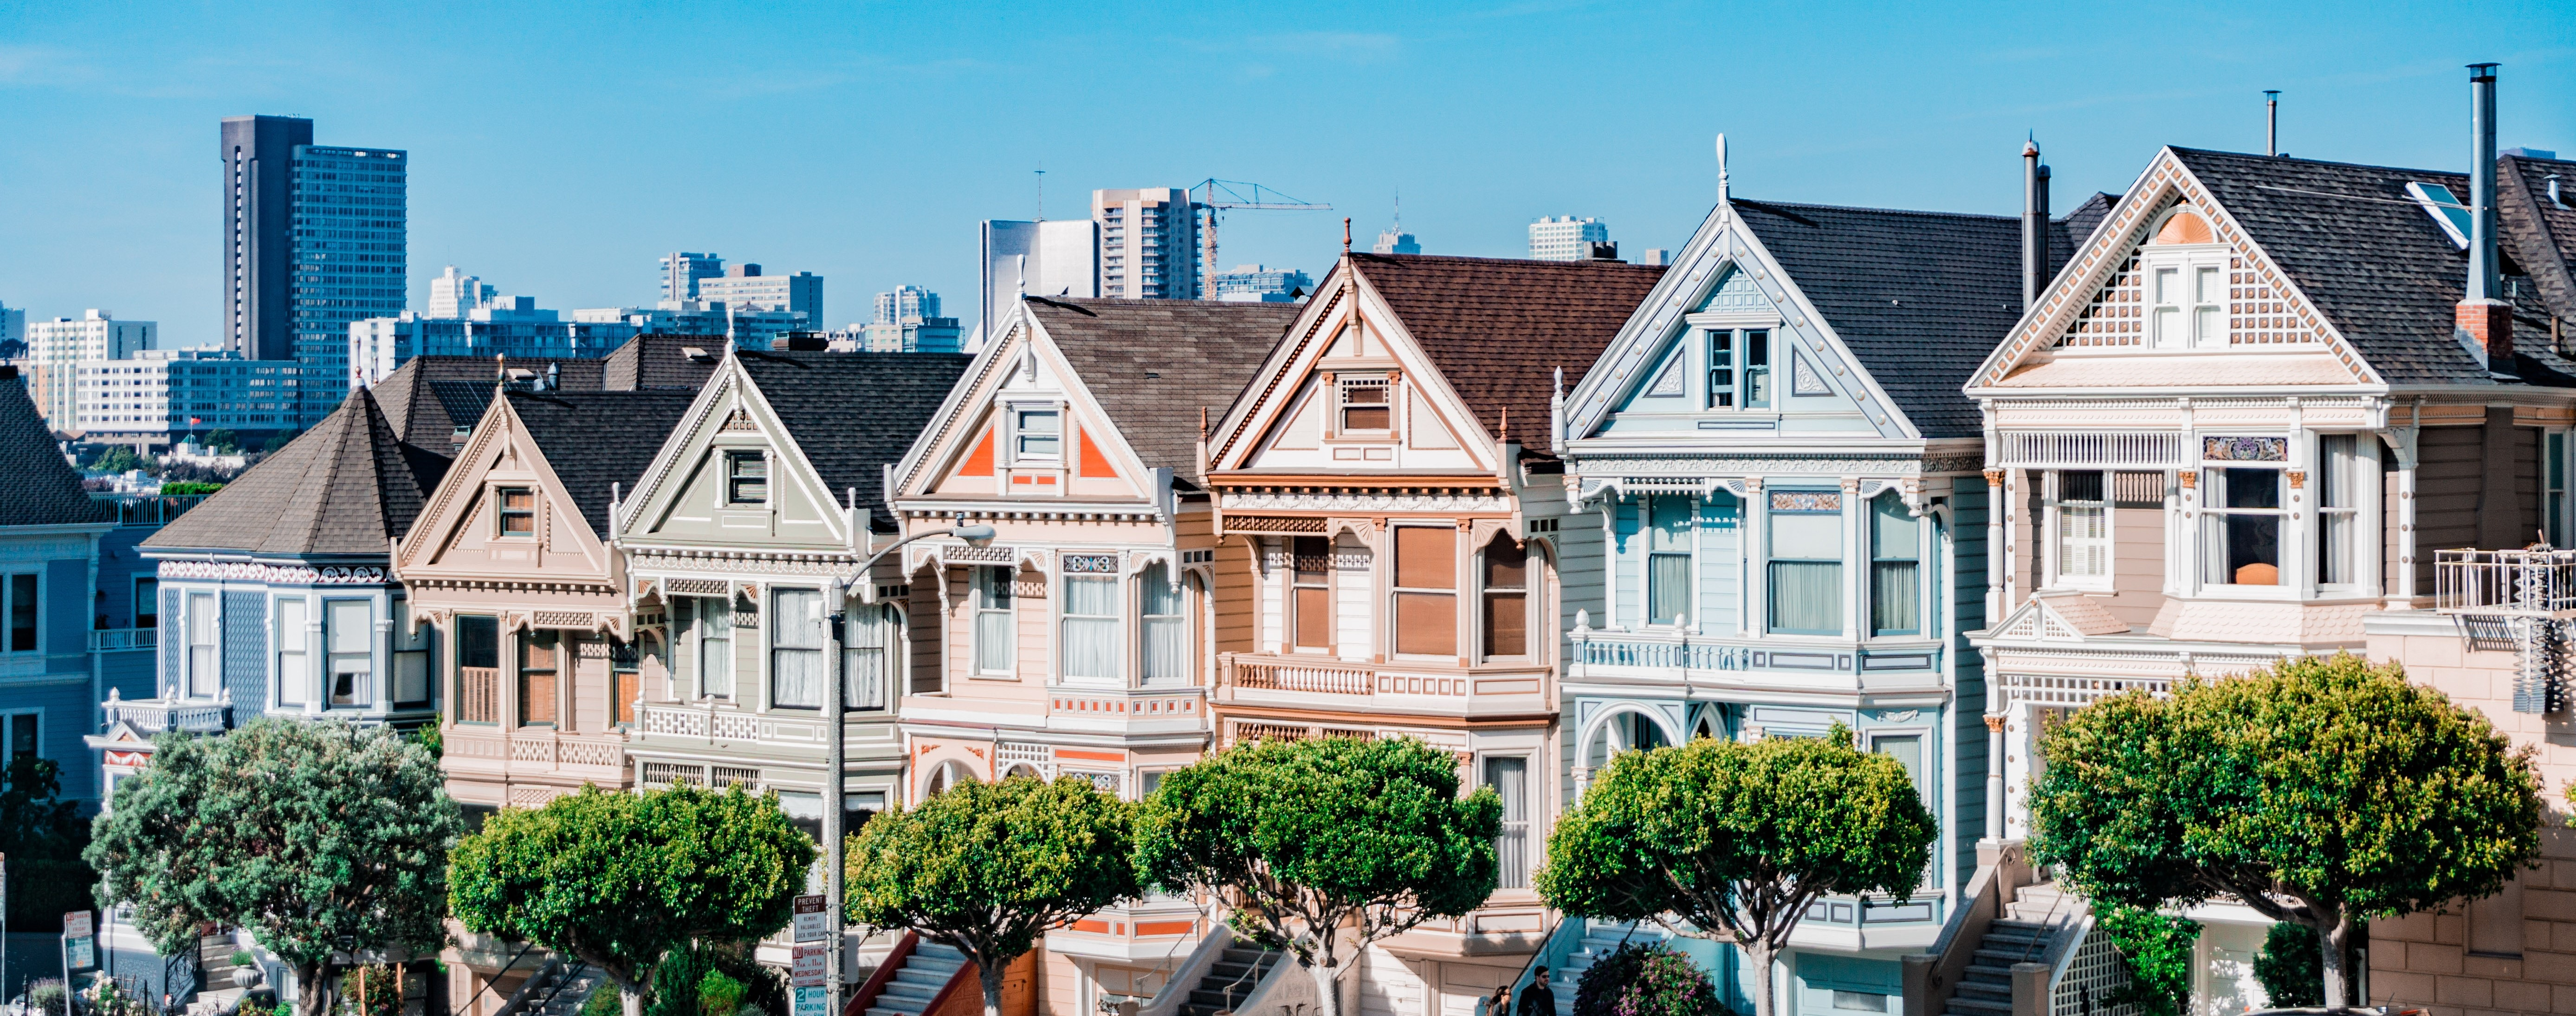 simlar but different San Fran homes banner - ross-joyner-568729-unsplash